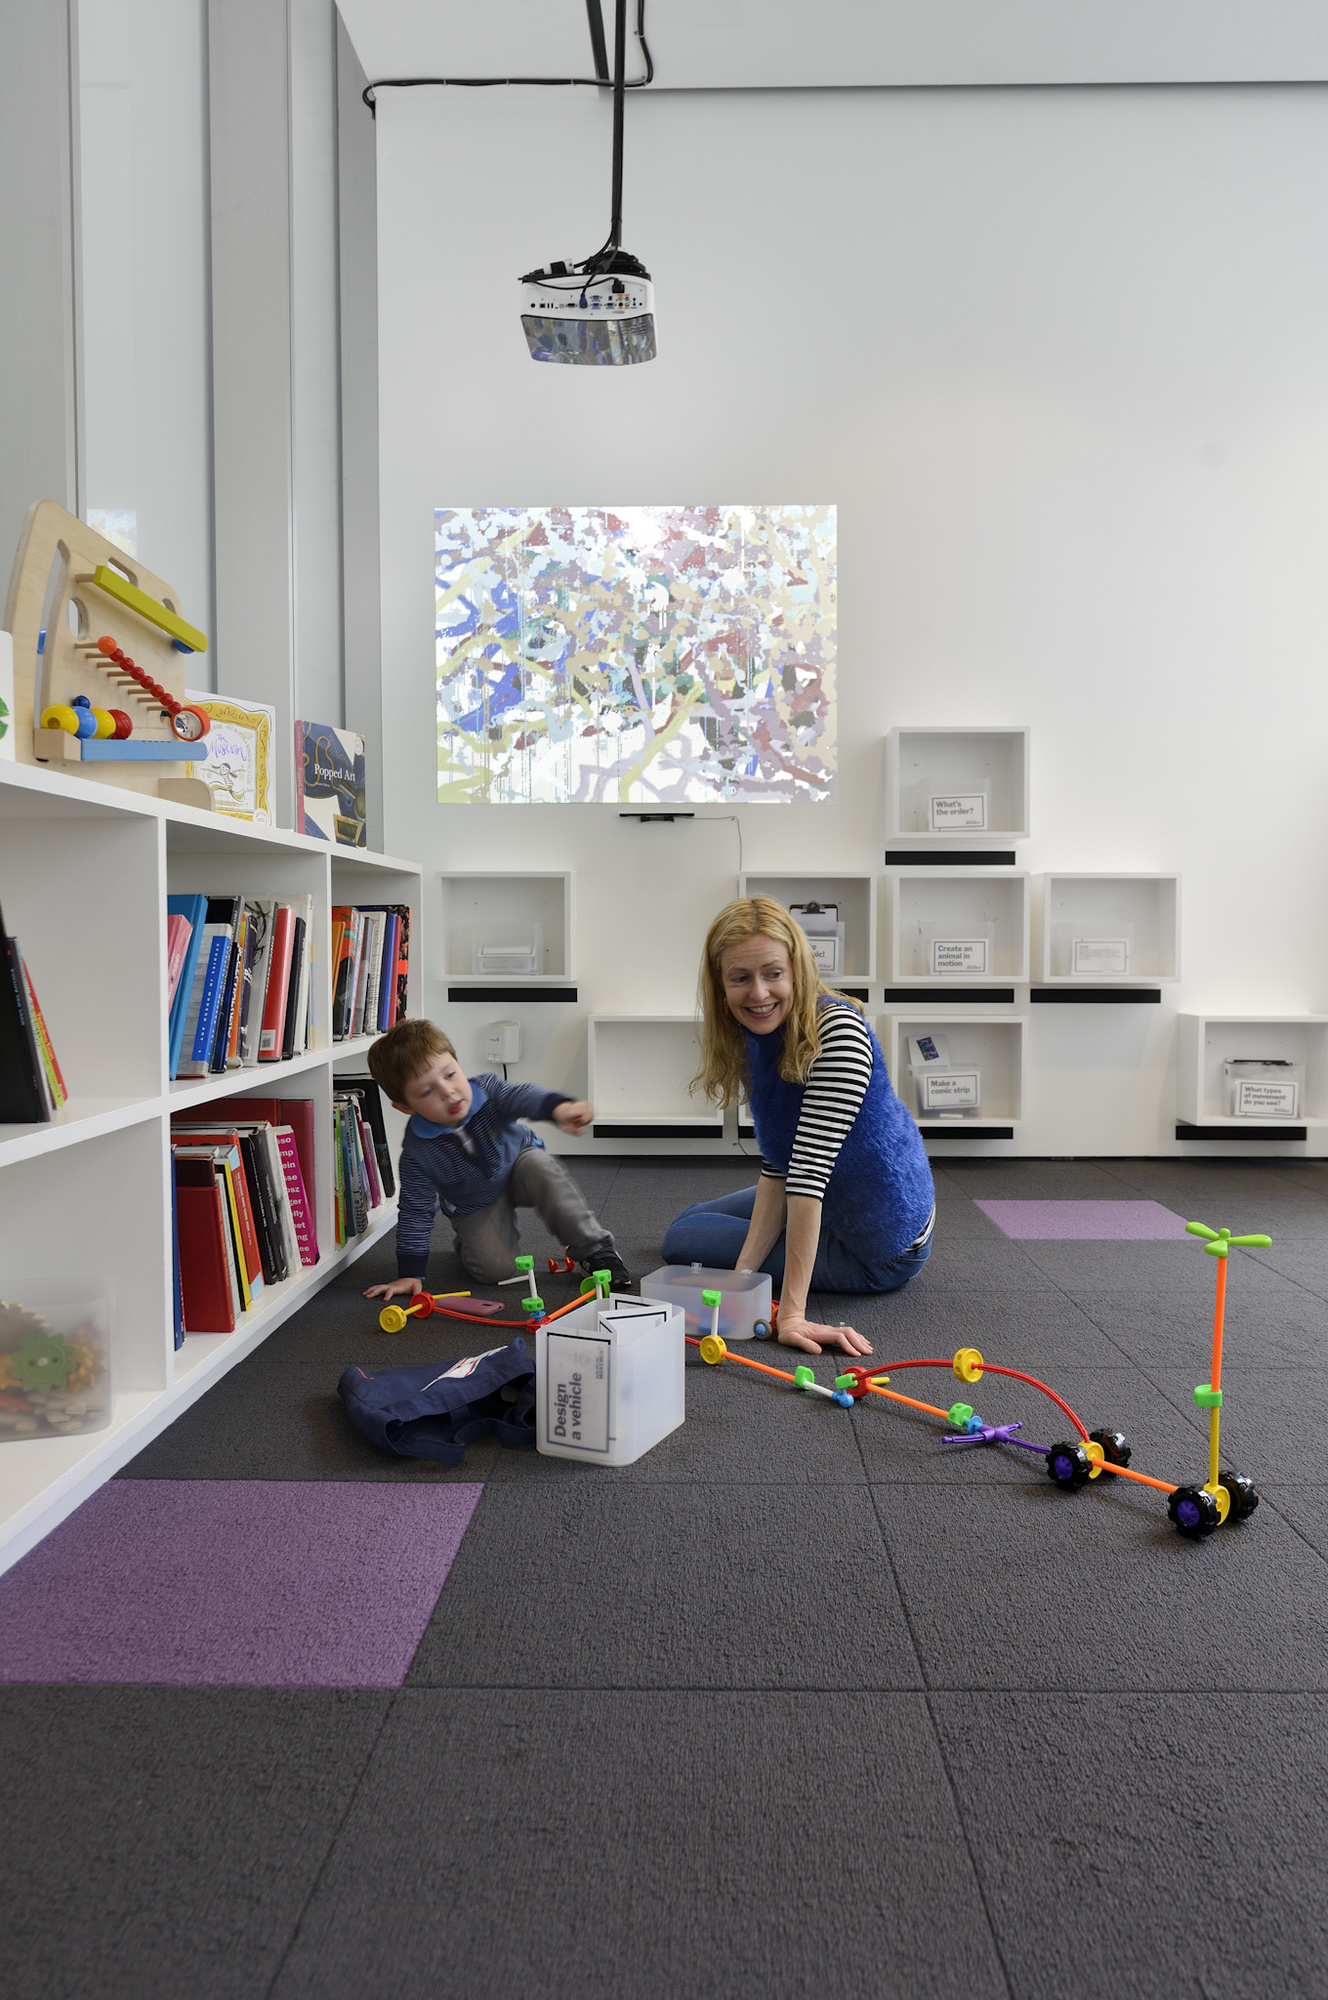 A child and a woman play with tinker toys